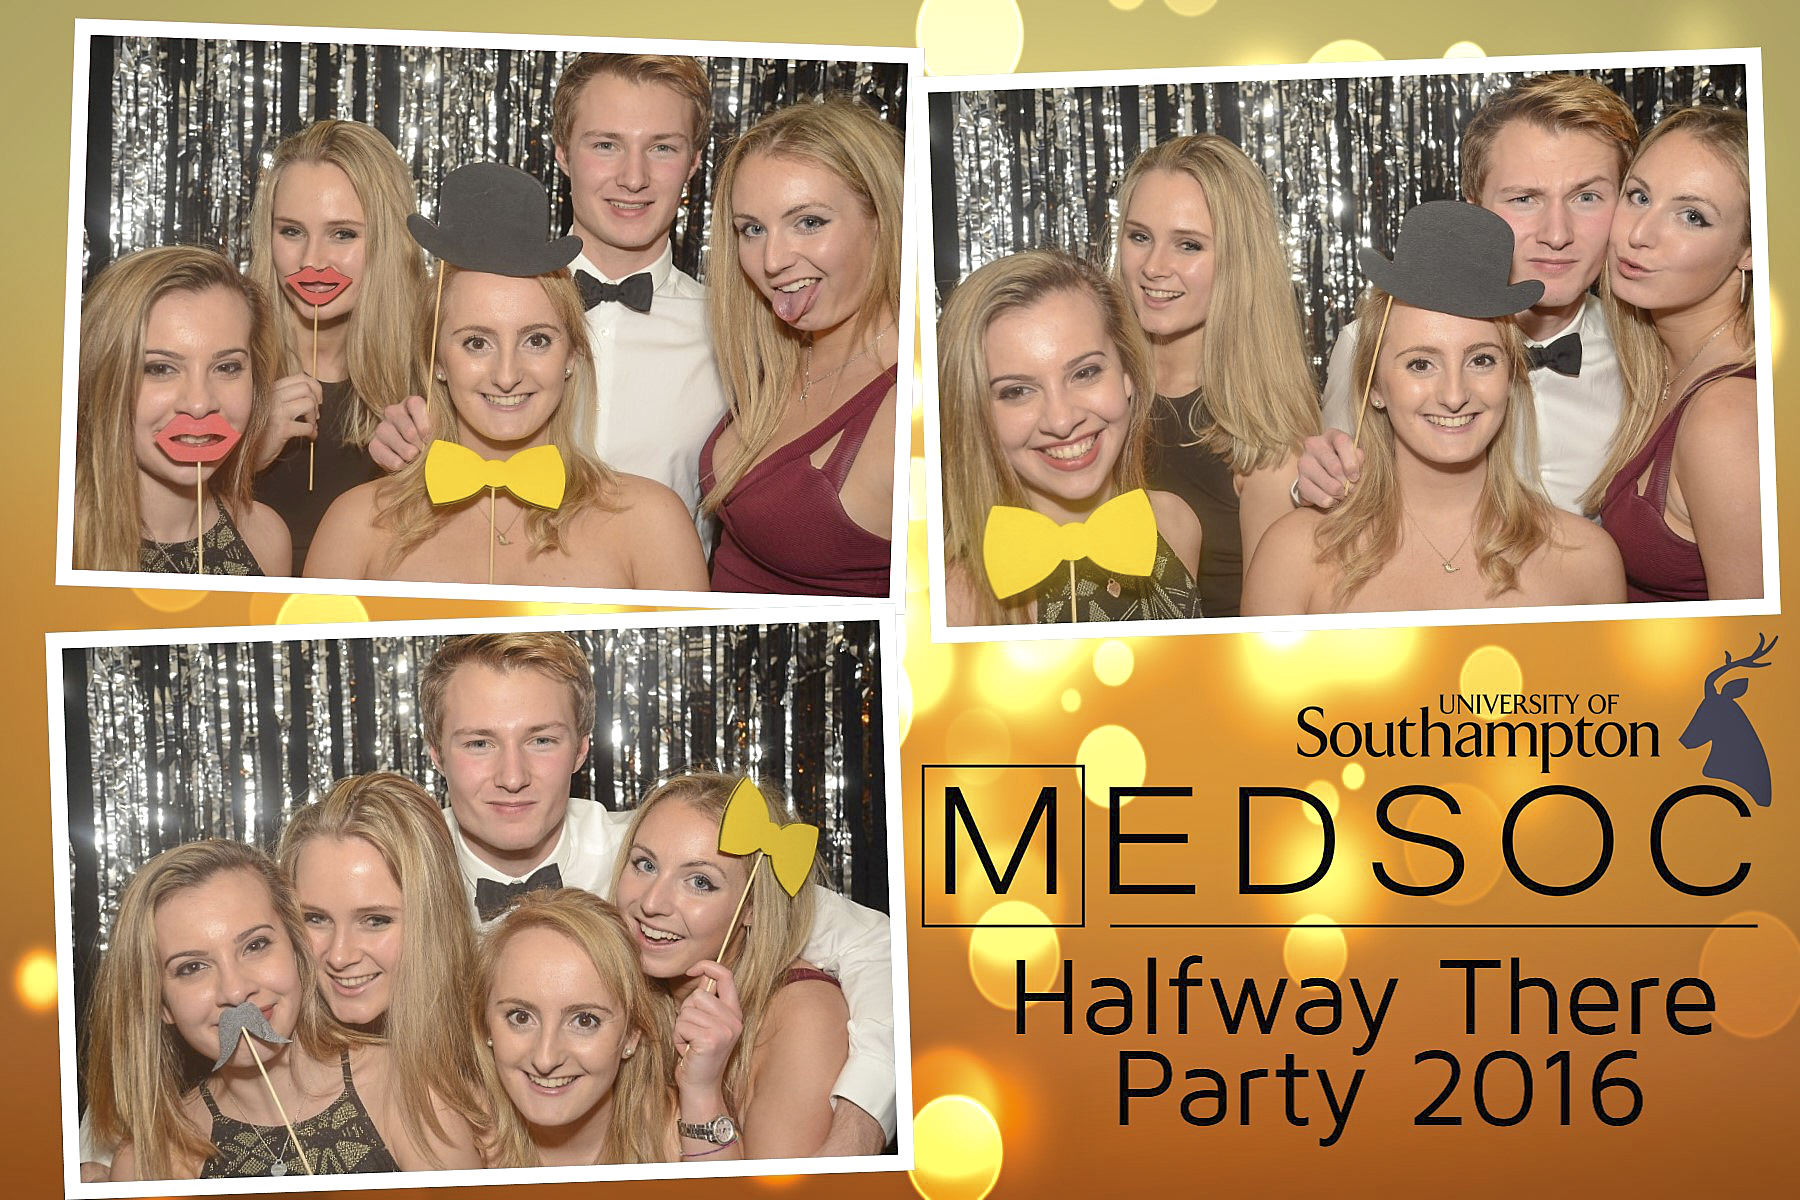 MedSoc Halfway There Party 2016 DS215921.jpg